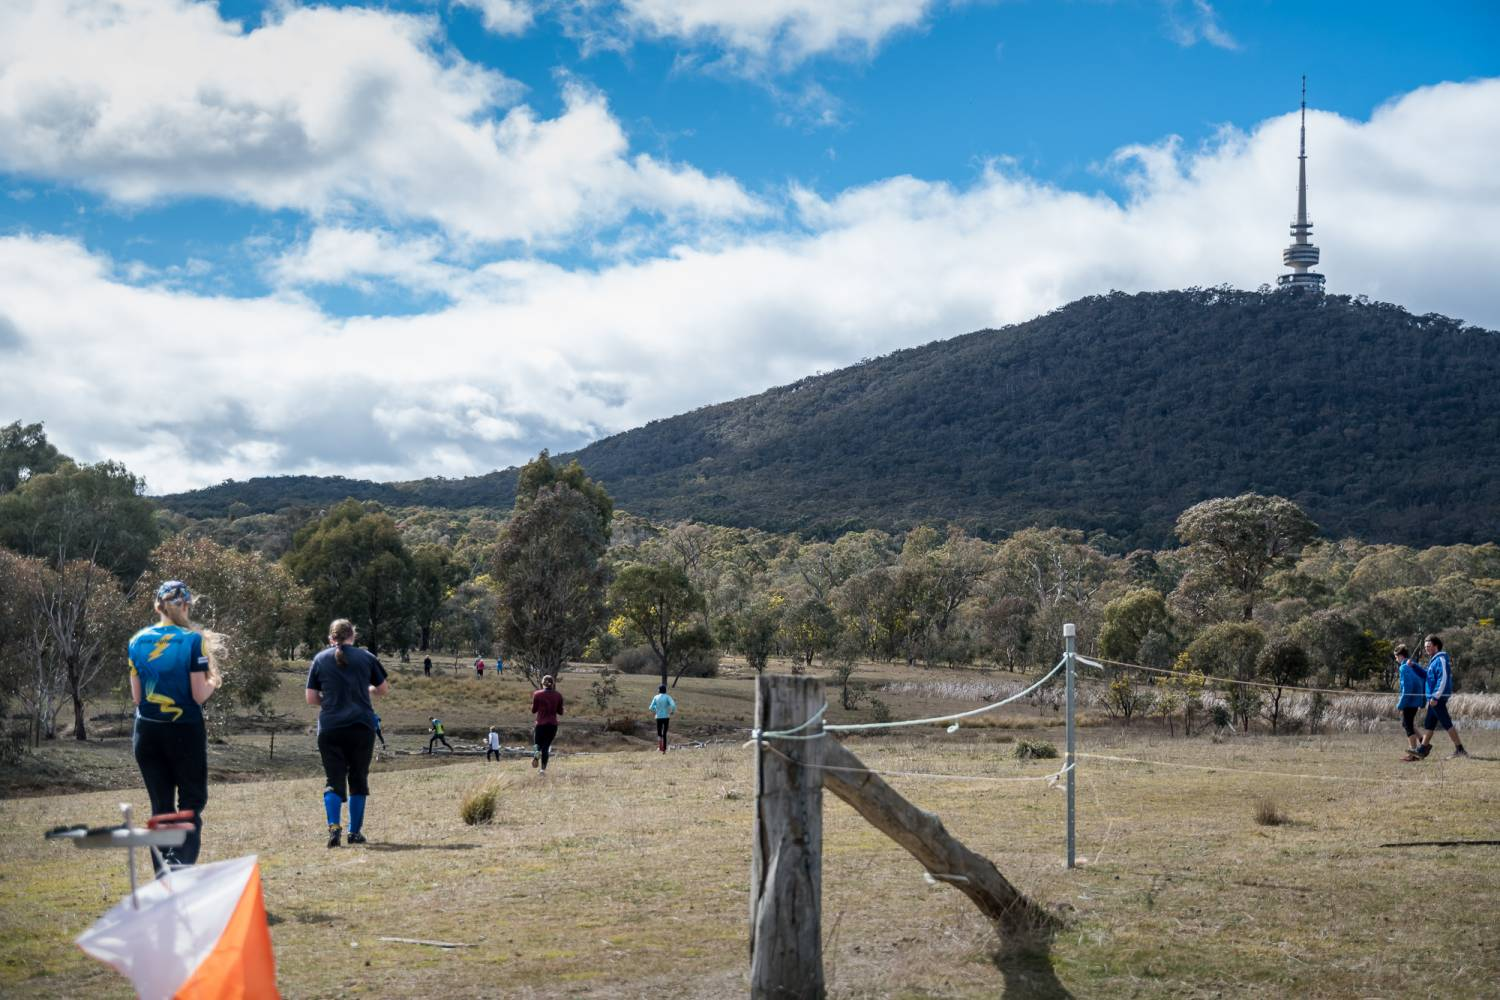 Orienteering Competitions to Recommence in July